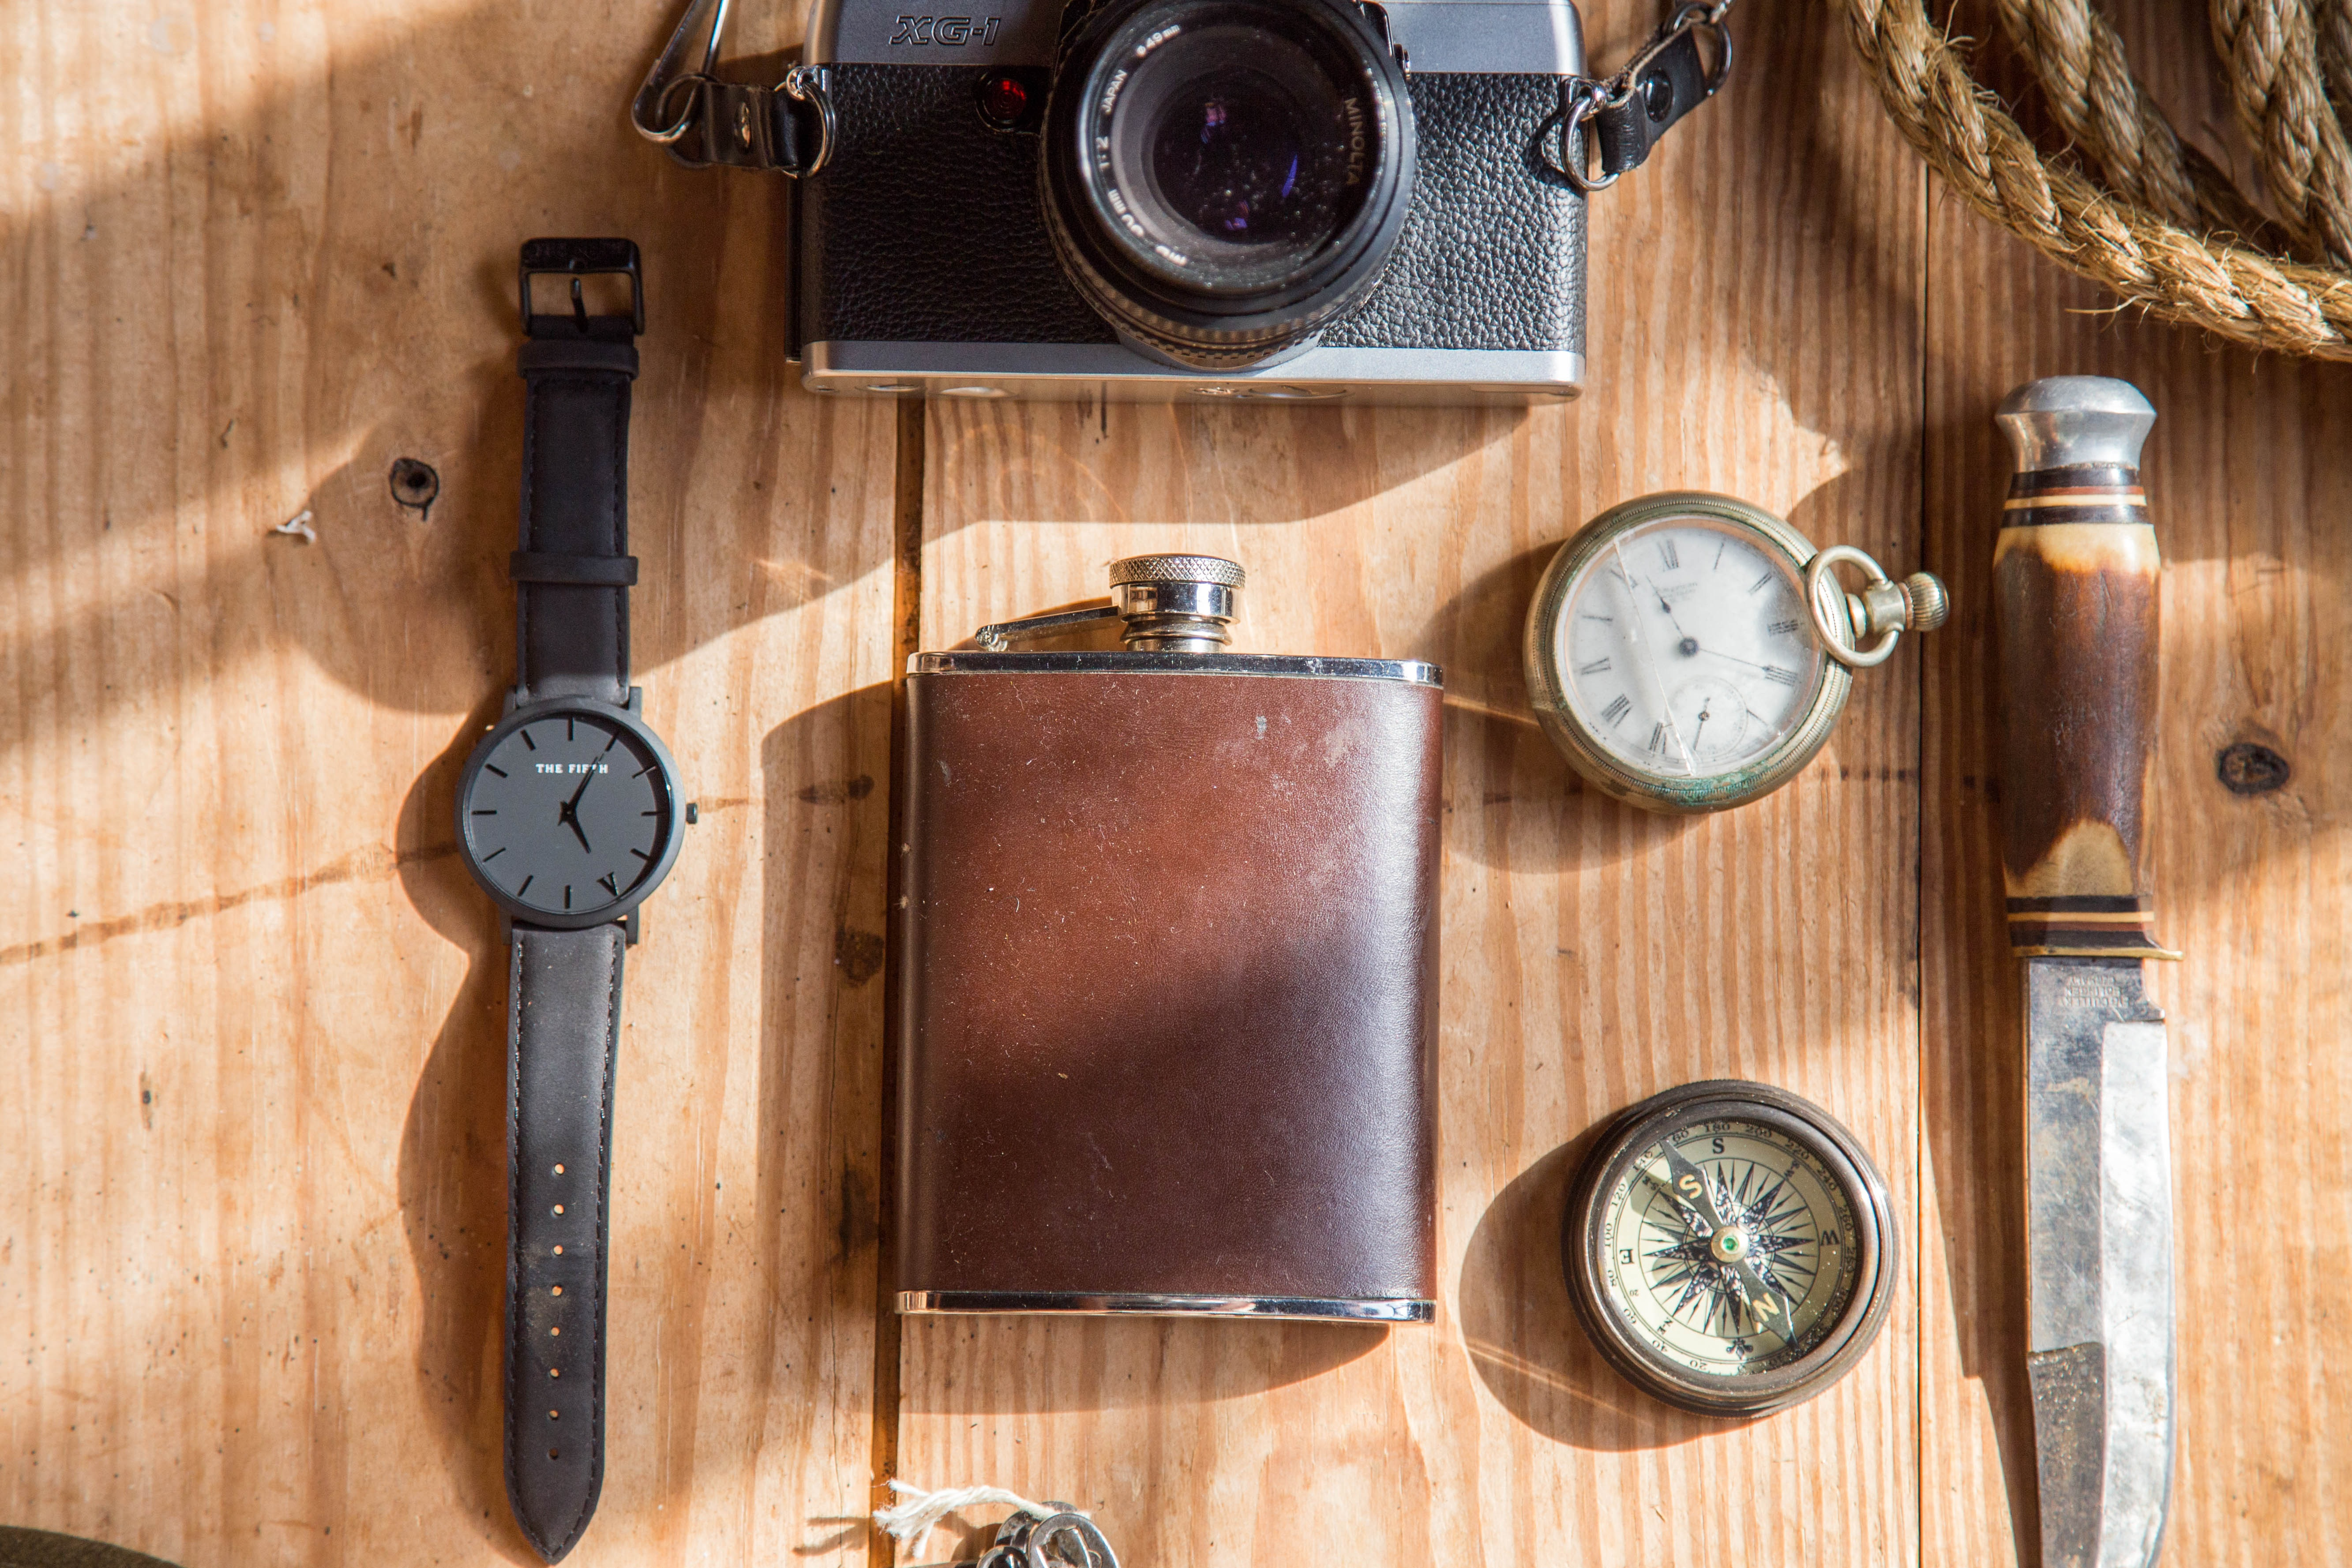 Hd Knife Wallpaper Brown Wine Flask Near Lomo Camera Watch Knife And Pocket